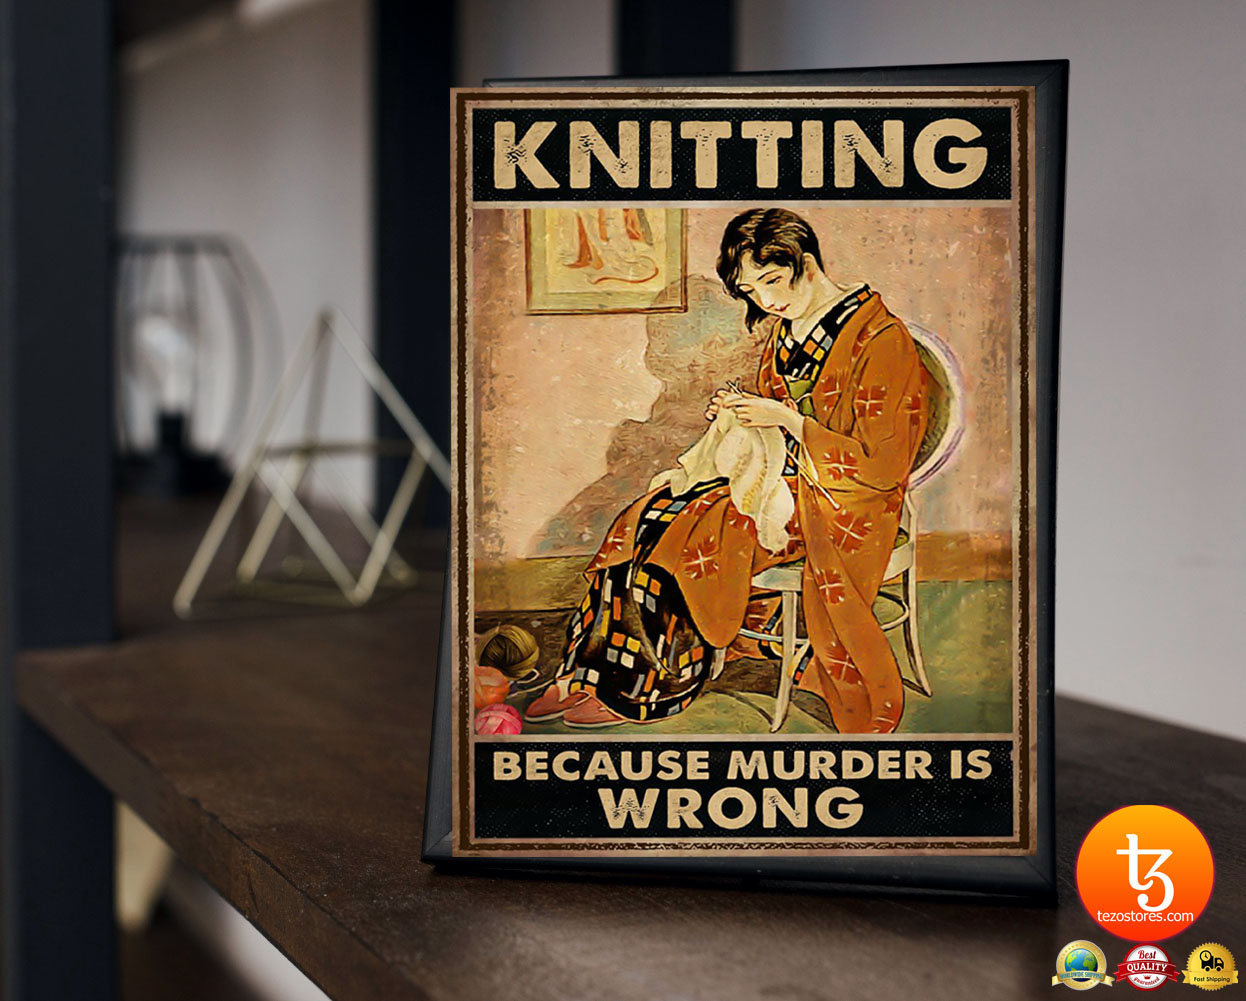 Knitting because murder is wrong poster 19